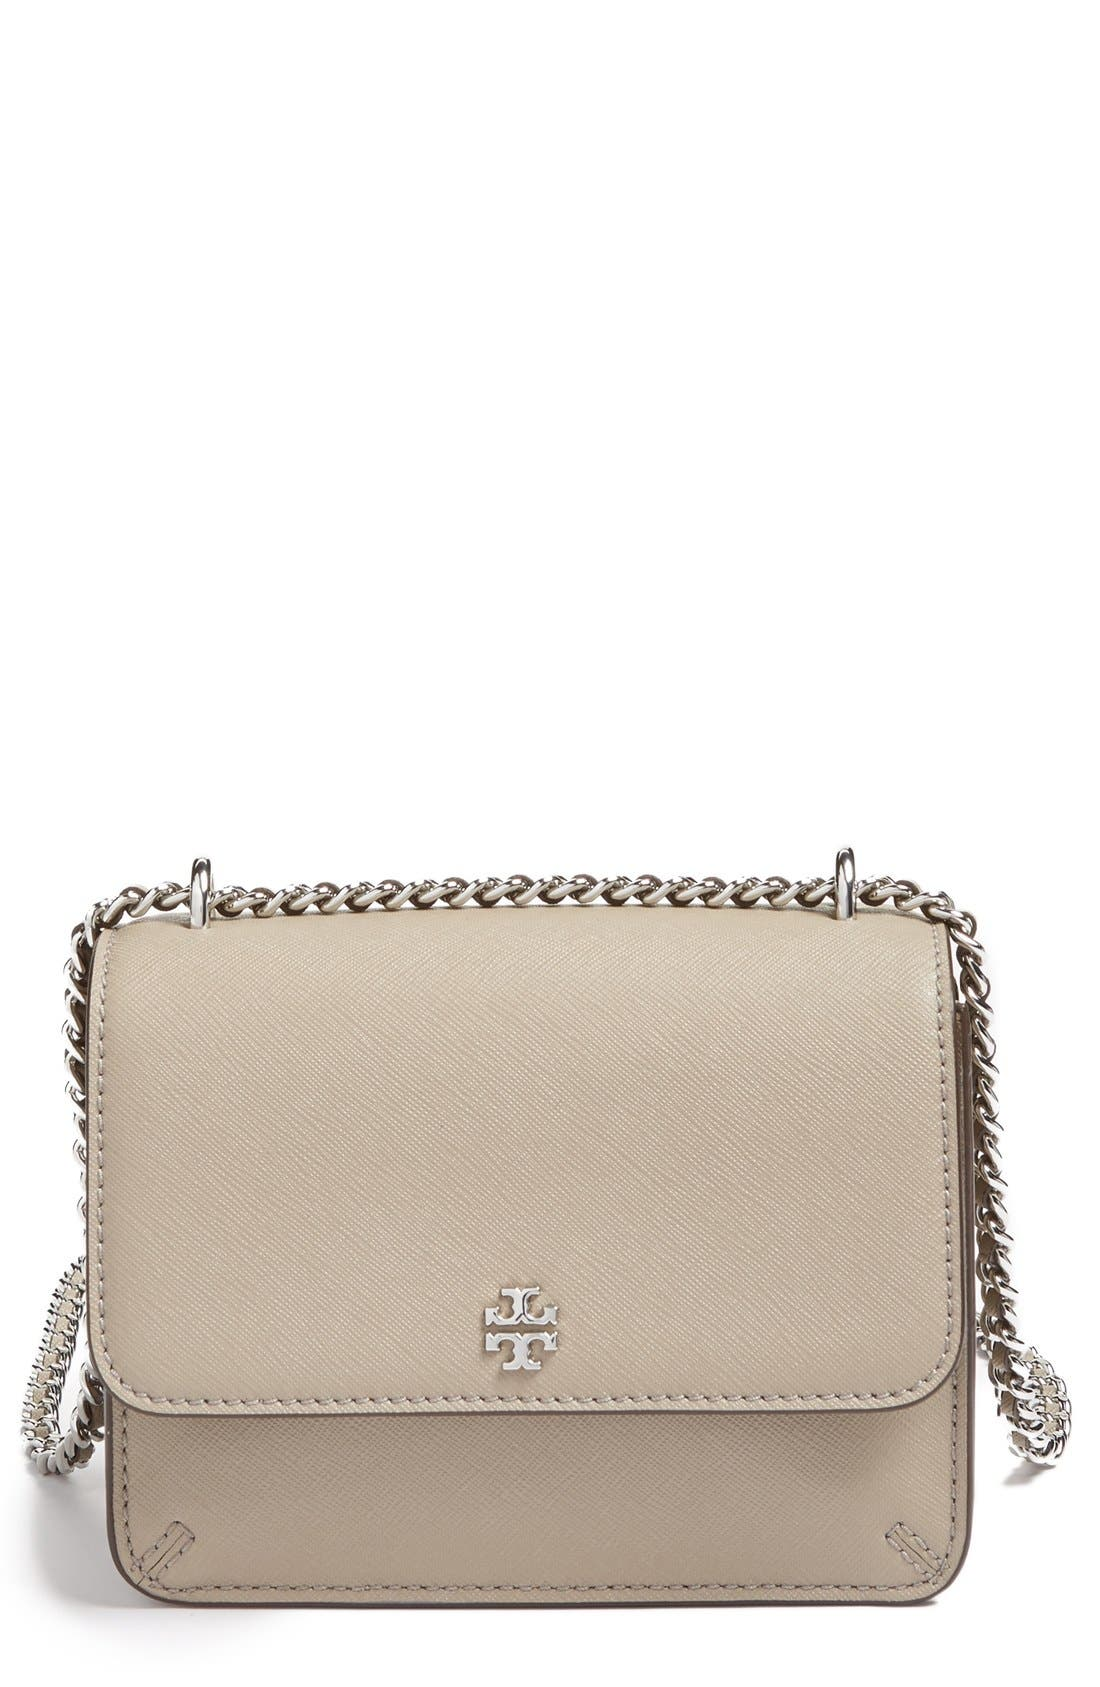 Tory Burch Mini Robinson Convertible Leather Shoulder Bag